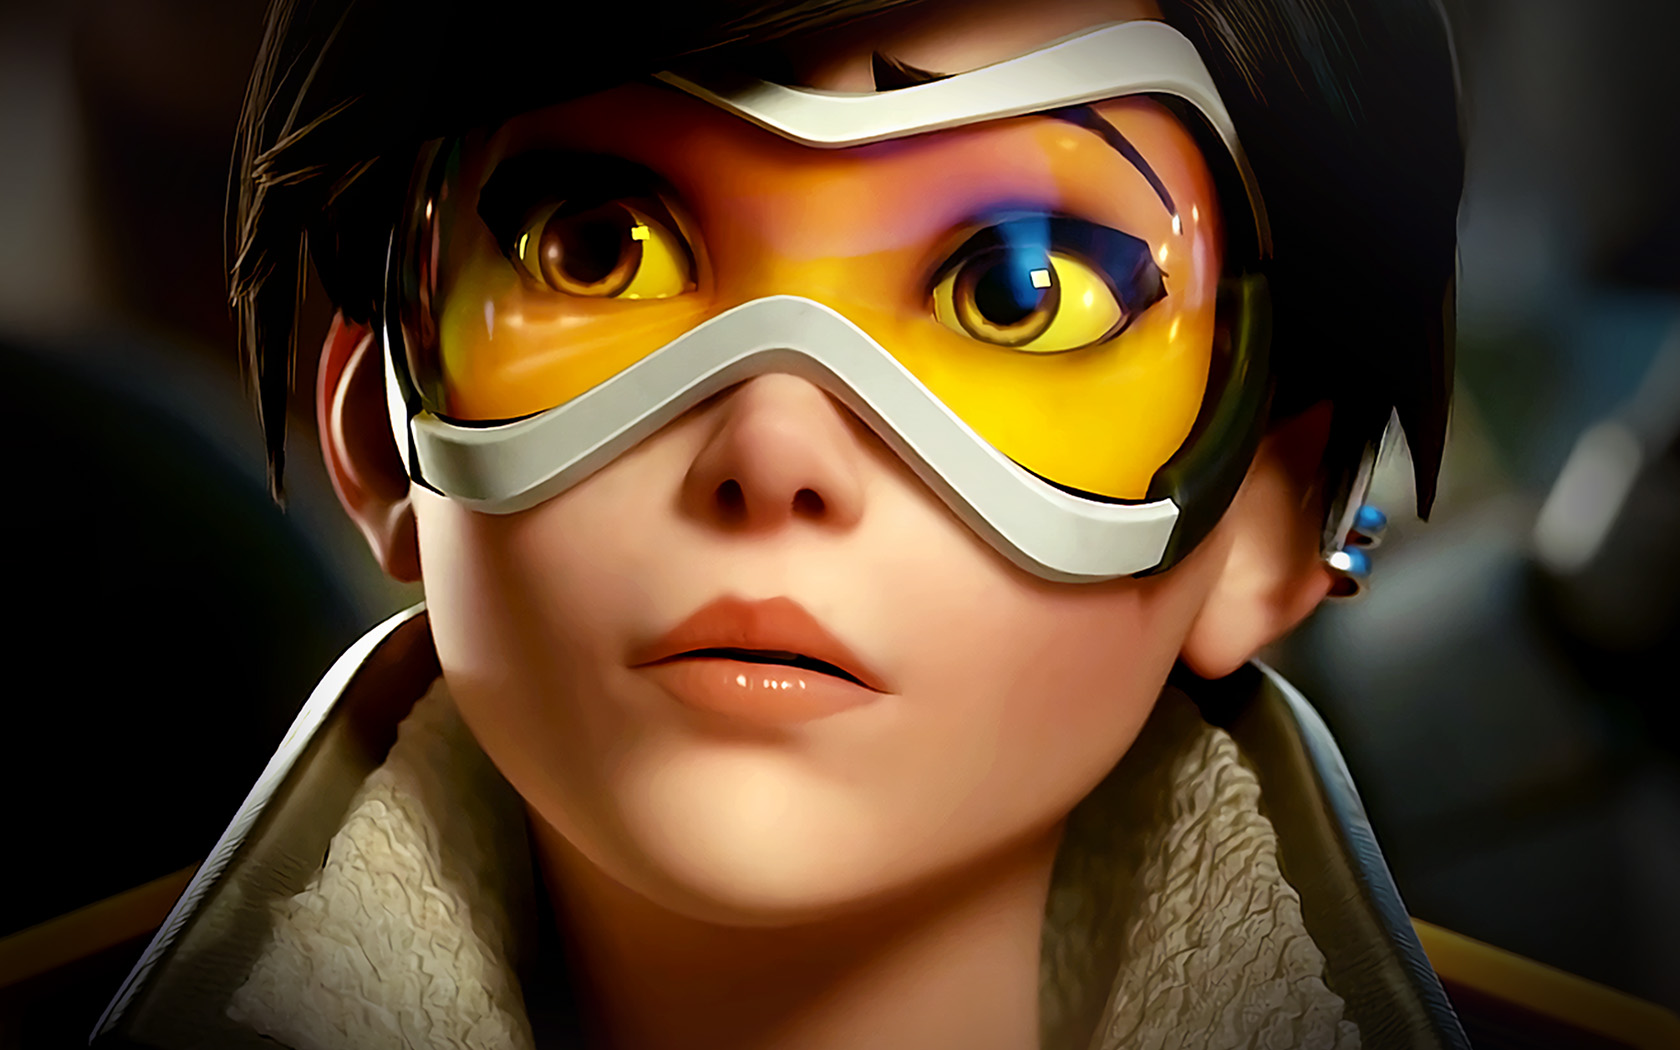 Cute Anime Avatar Girl Wallpaper Ar95 Overwatch Tracer England Game Art Illustration Wallpaper